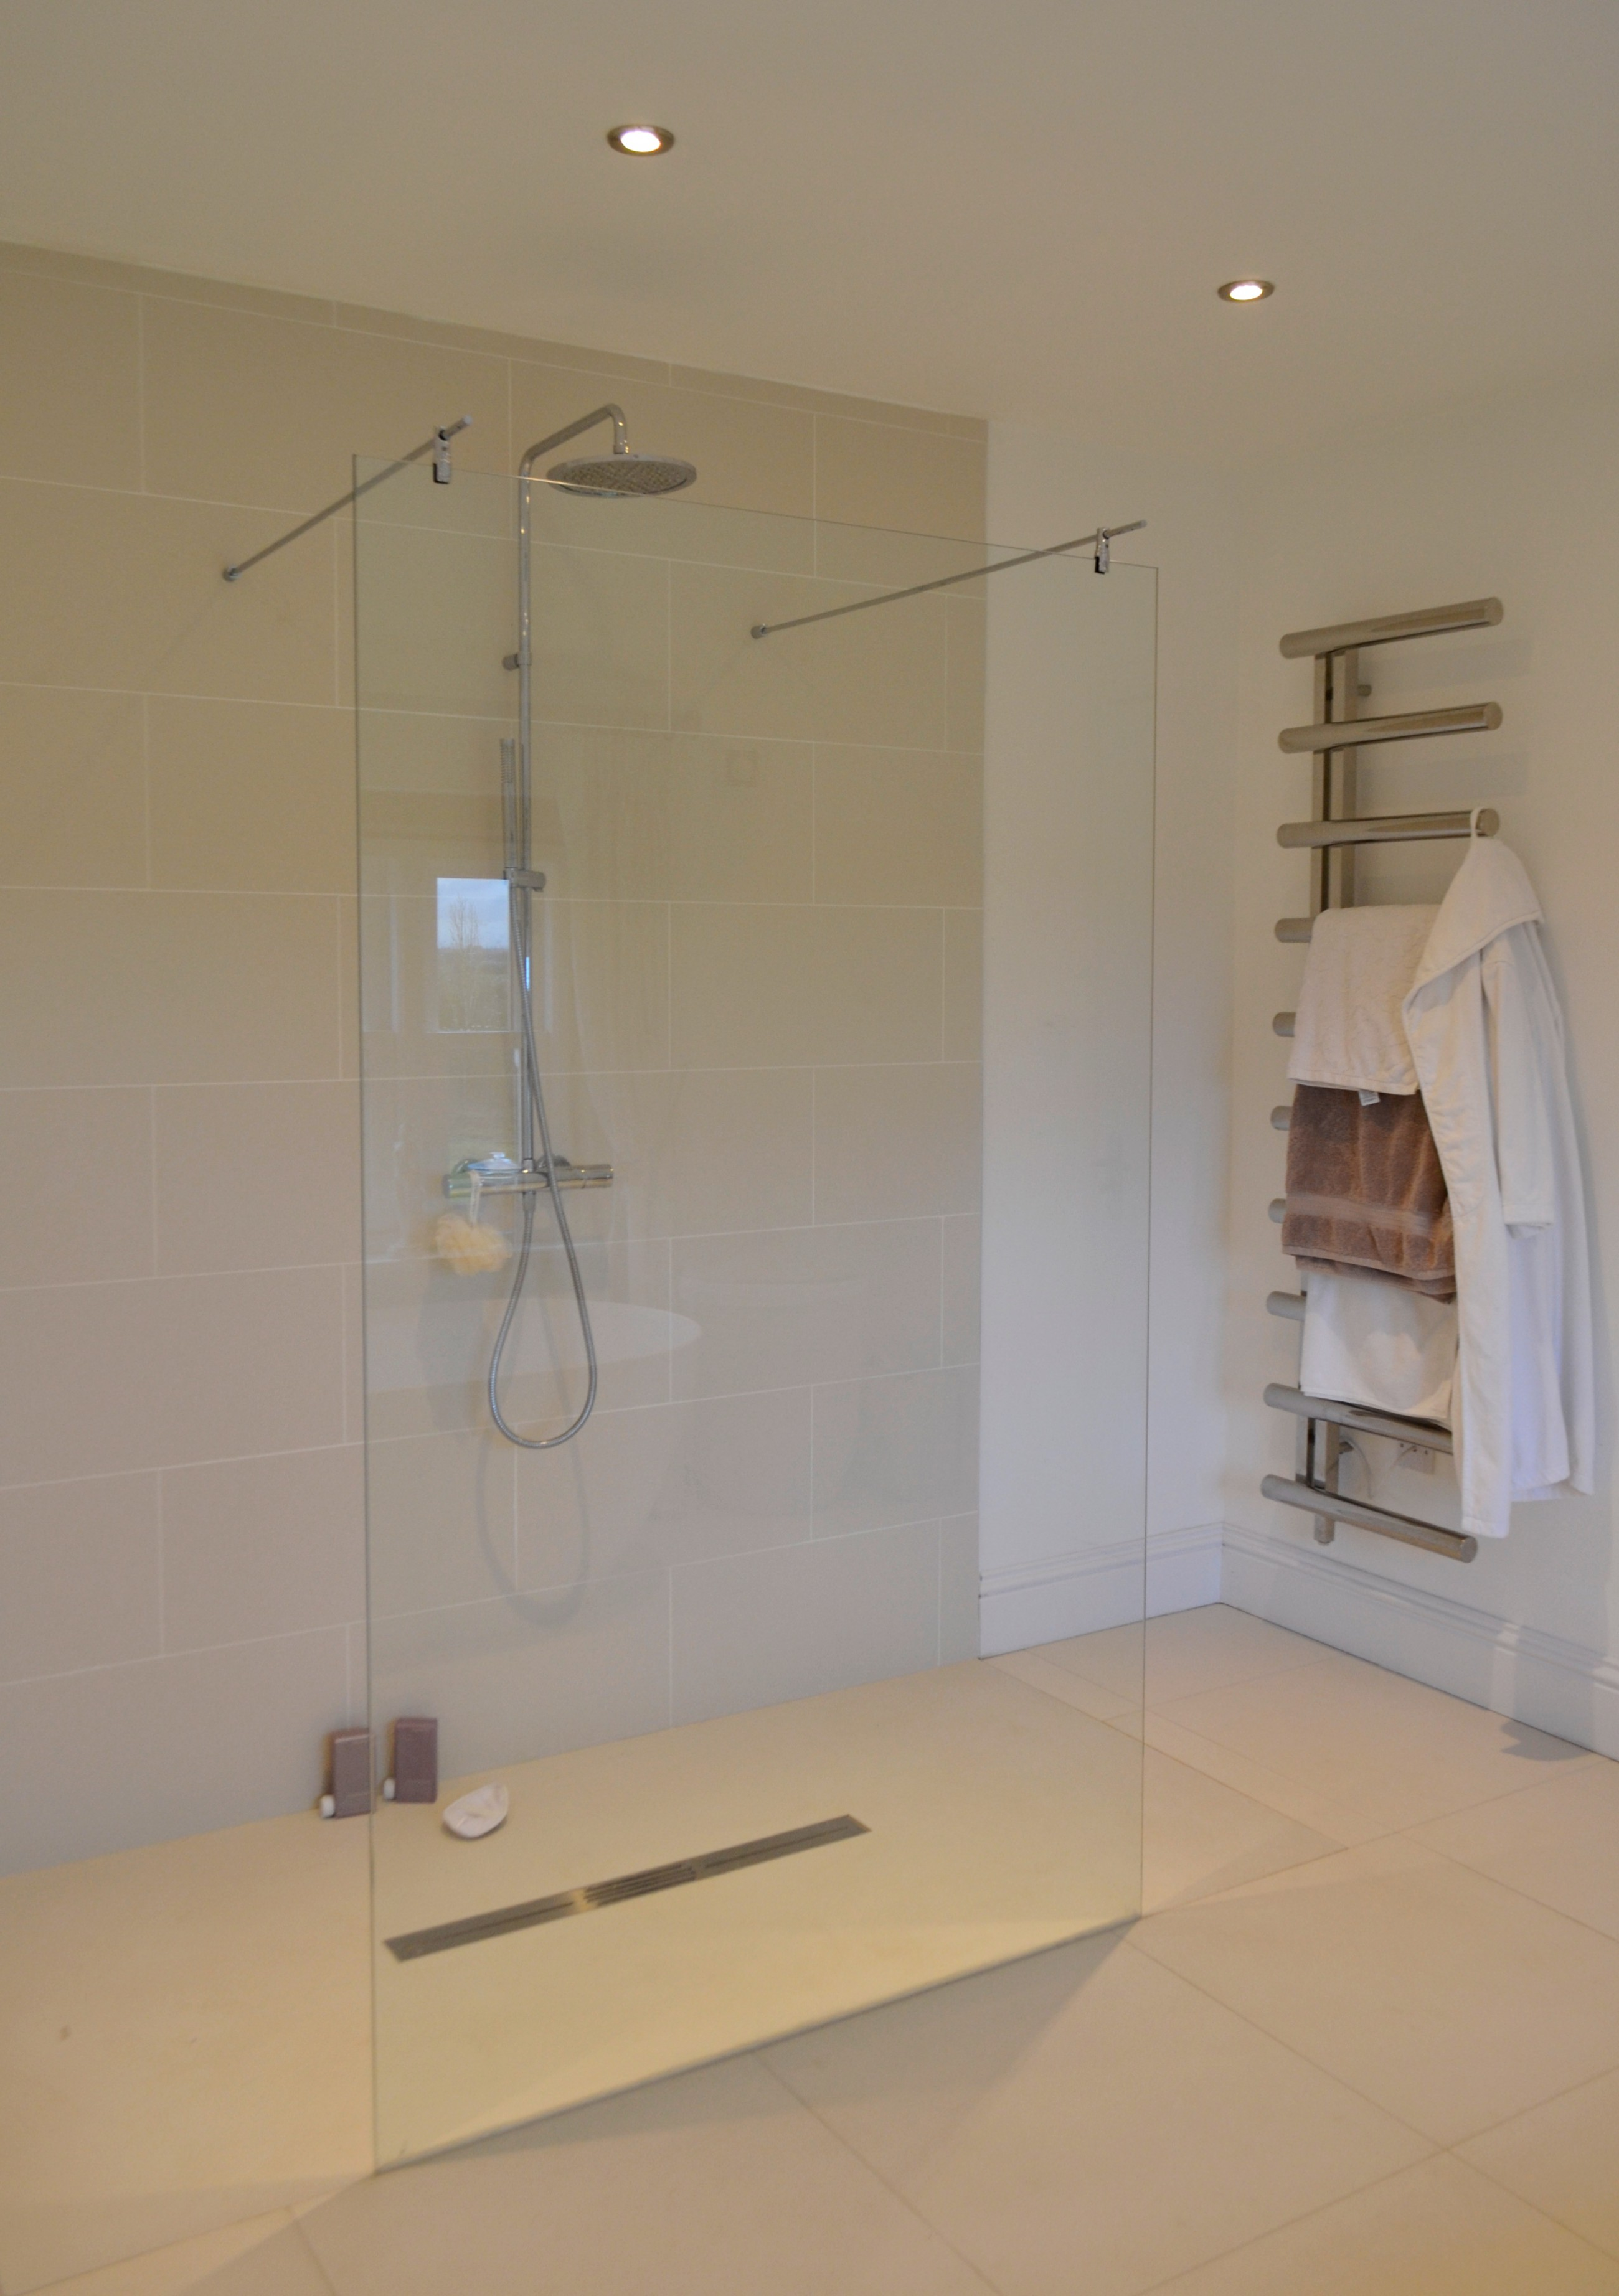 Five Bathrooms And A Cloakroom In Clifford Chambers New Build Kitchen Tile And Bathroom Gallery